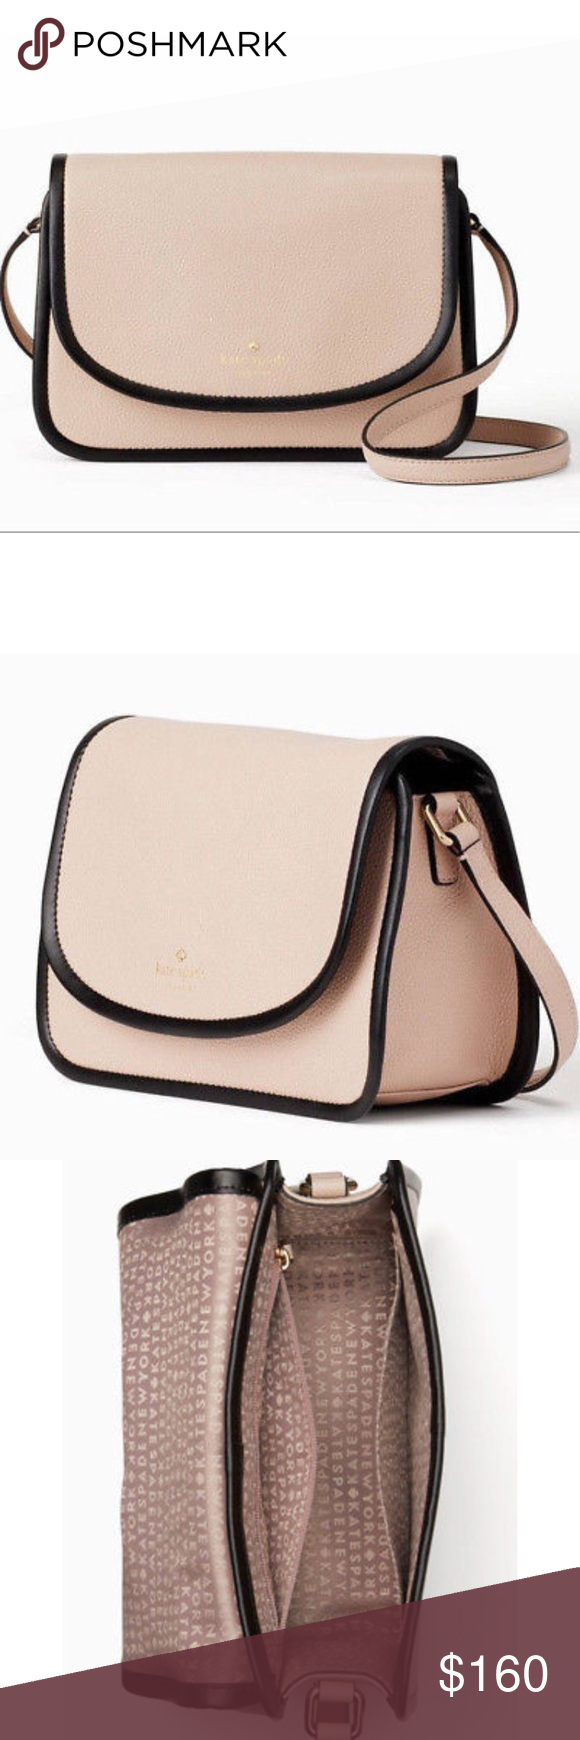 57f246e2c0d5a Kate Spade Ivy Ward Place Bag 100% BRAND NEW - GENUINE AUTHENTIC Kate Spade  New York Ward Place Ivy  WKRU5388 Rose Cloud (287) Features  Soft embossed  ...